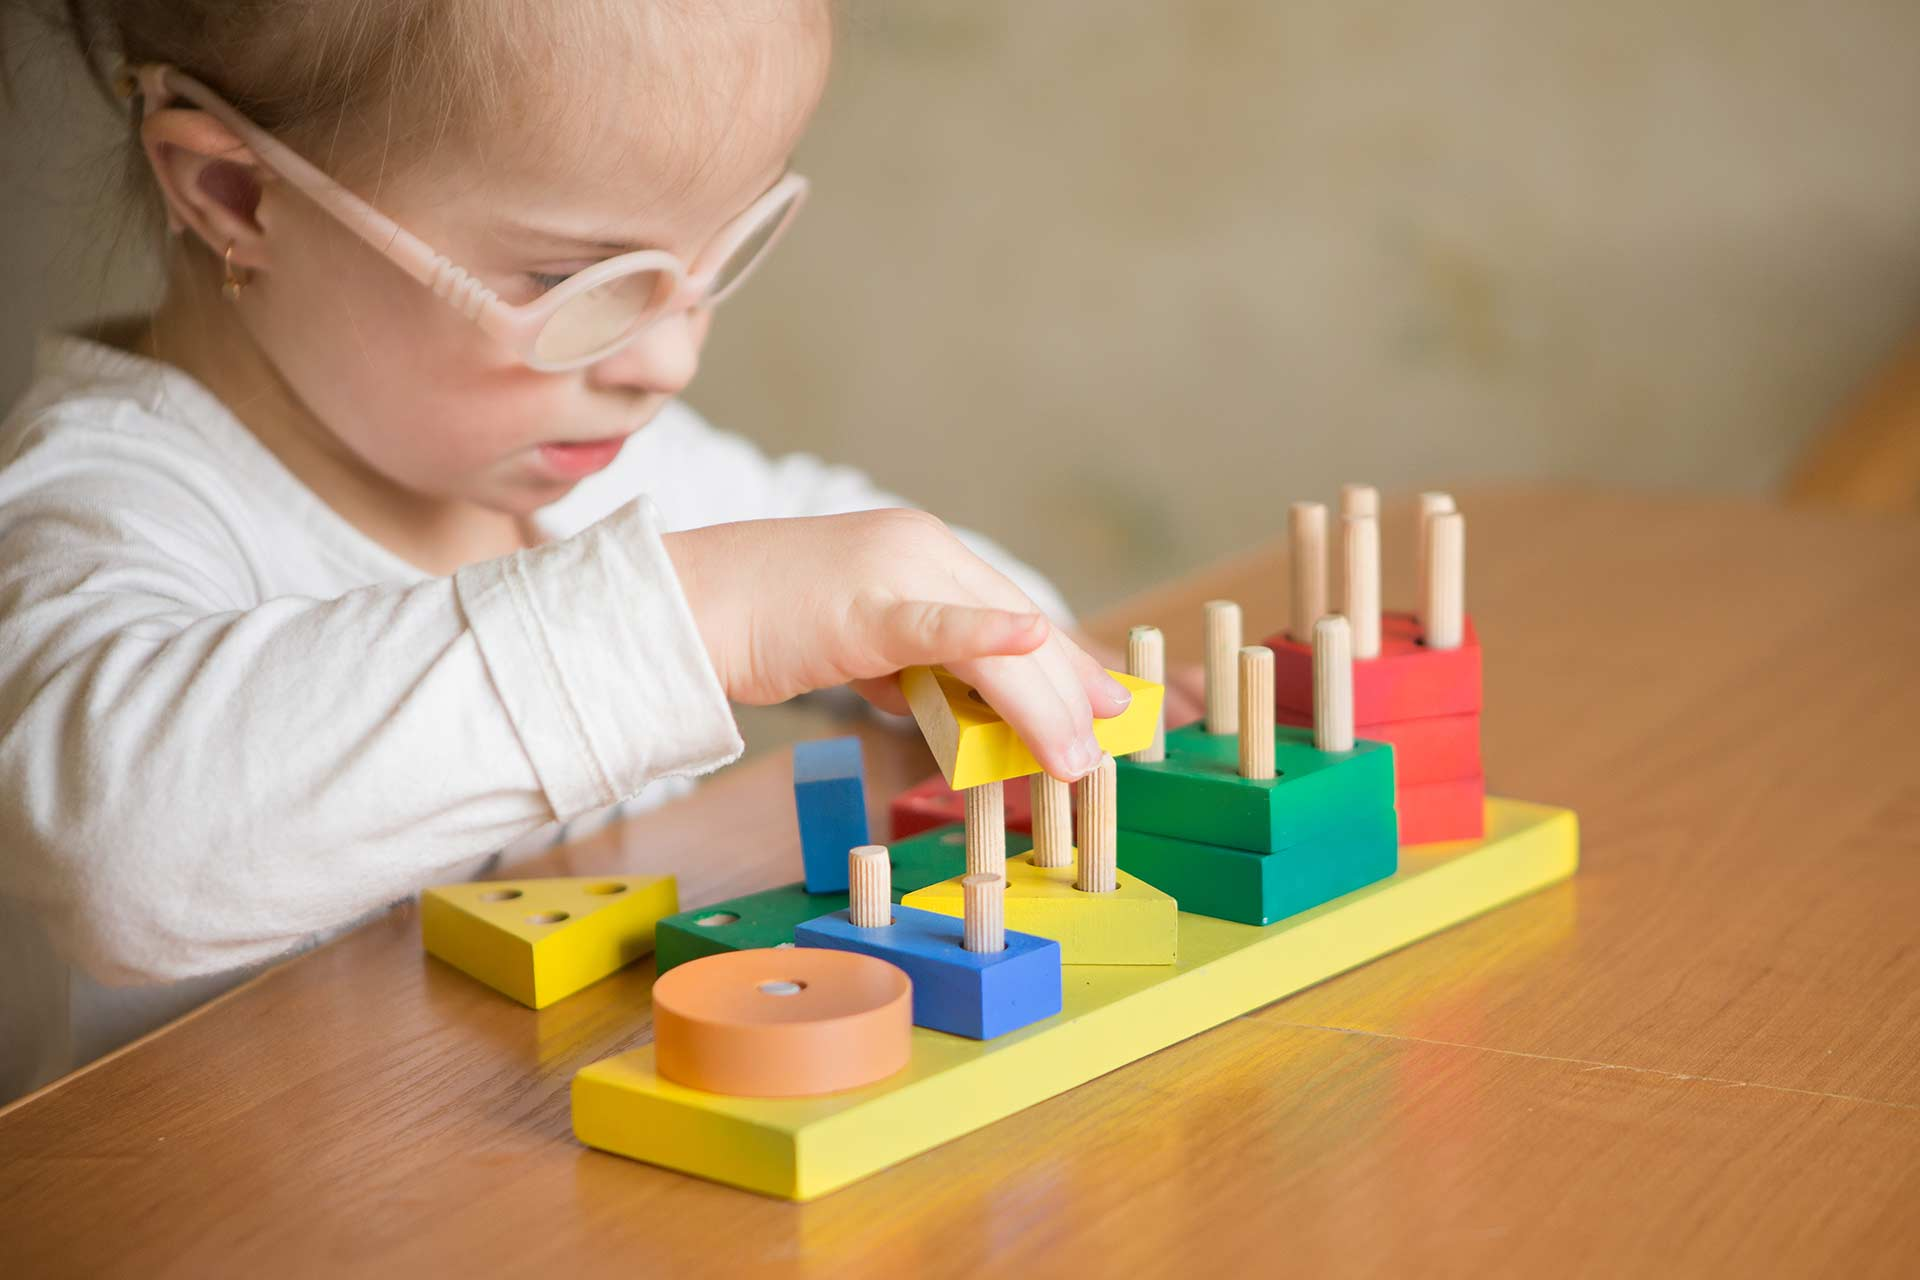 Identifying-children-with-special-needs